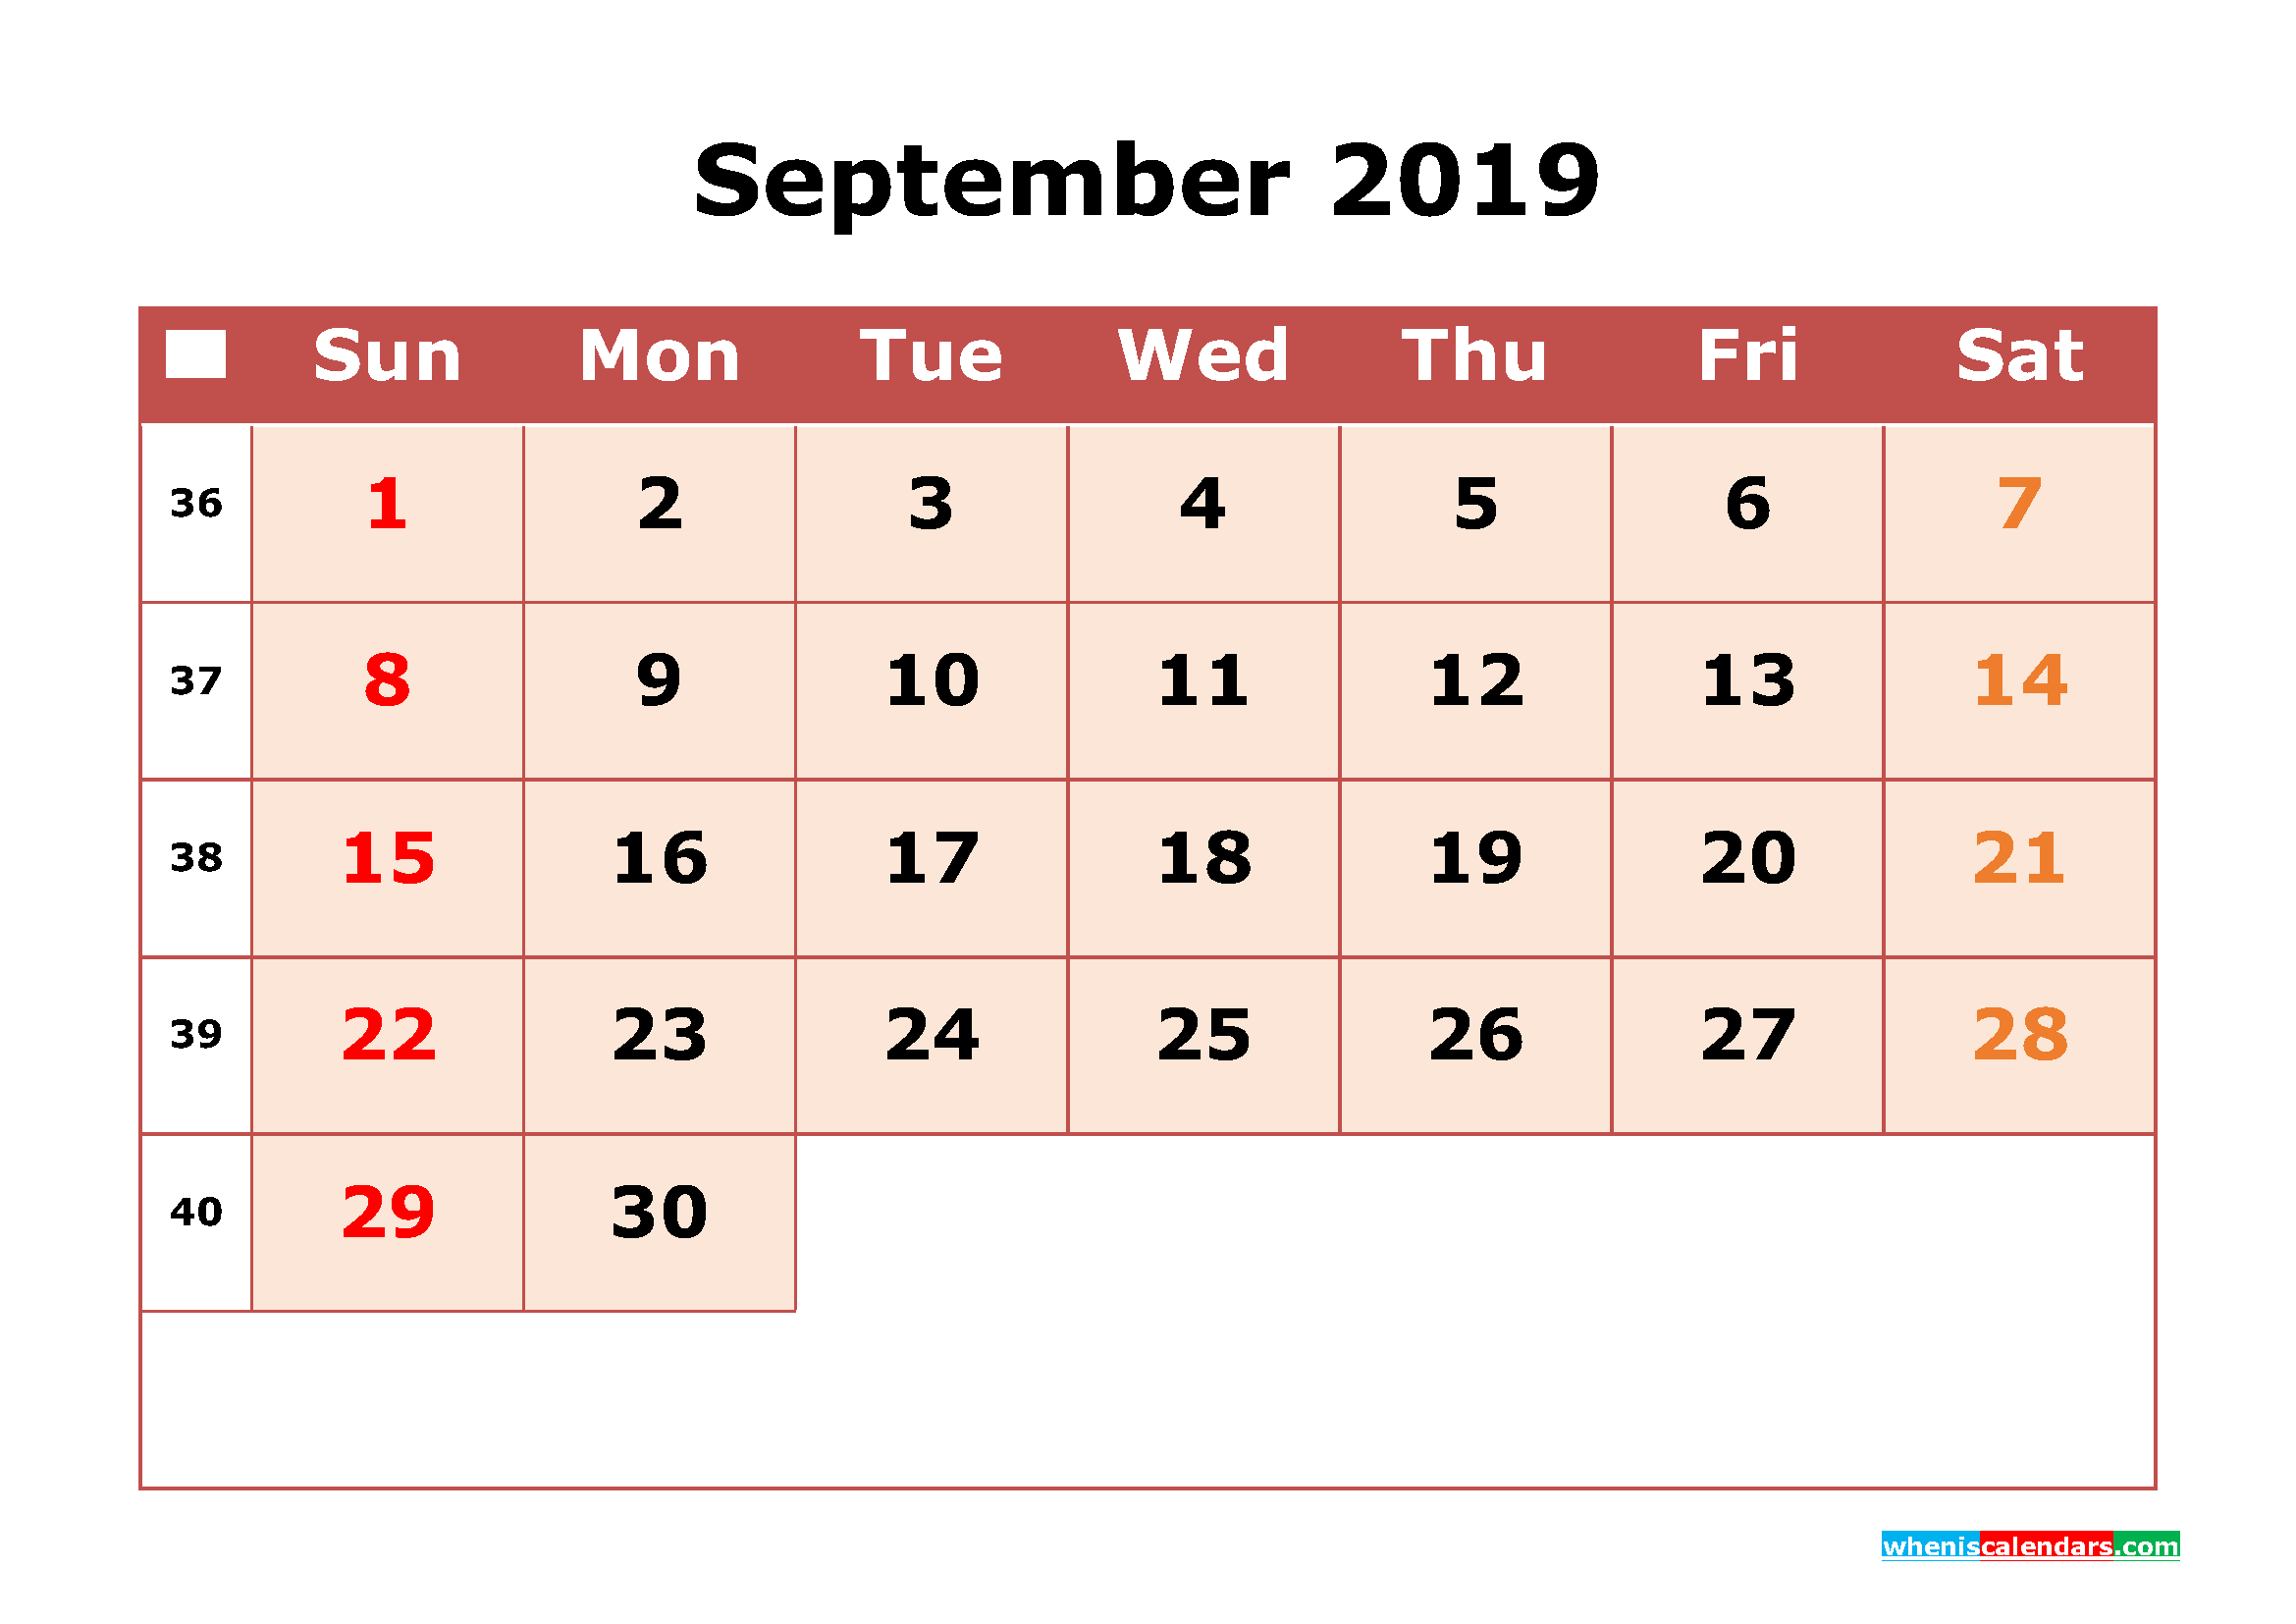 get free september 2019 printable calendar with week numbers as pdf image